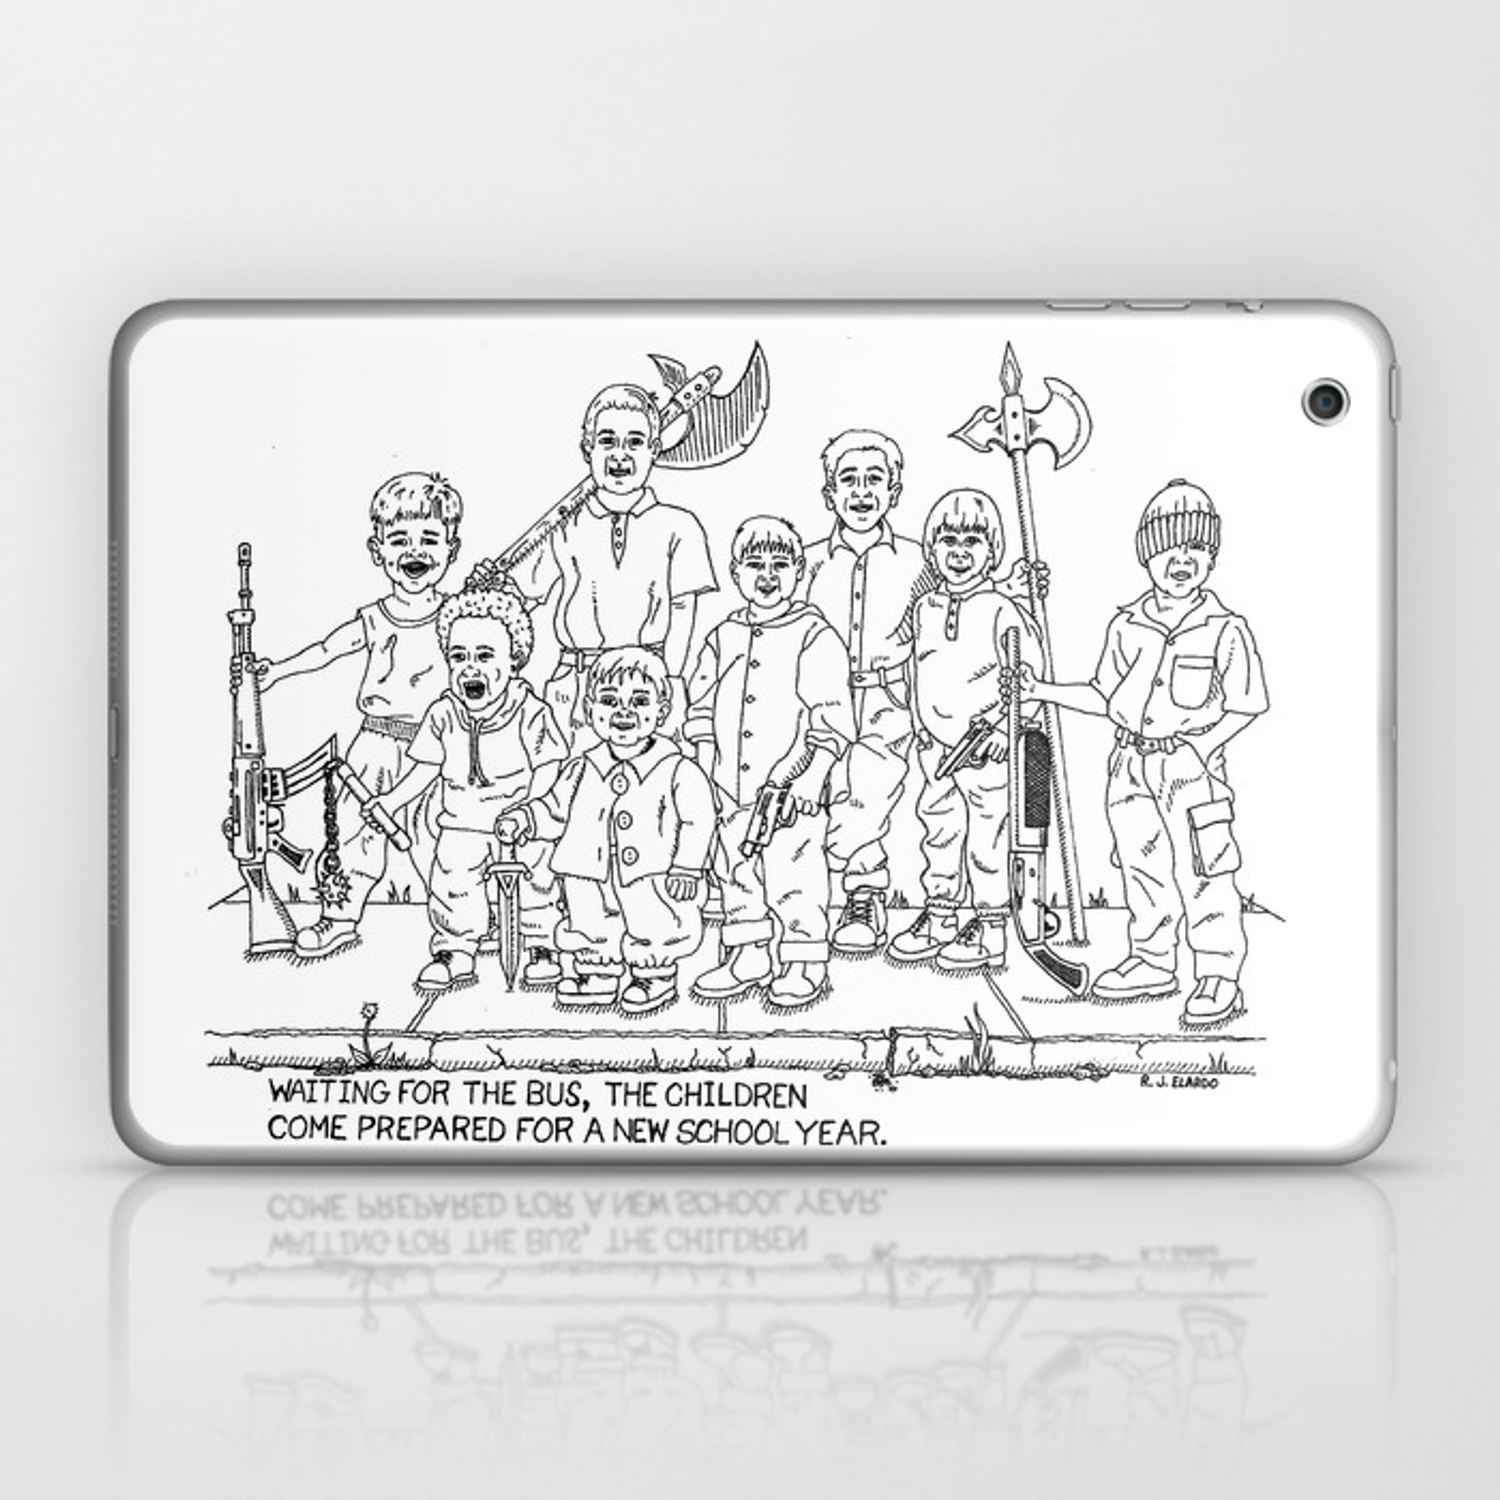 Bus School Year Satire Drawing Laptop Ipad Skin By